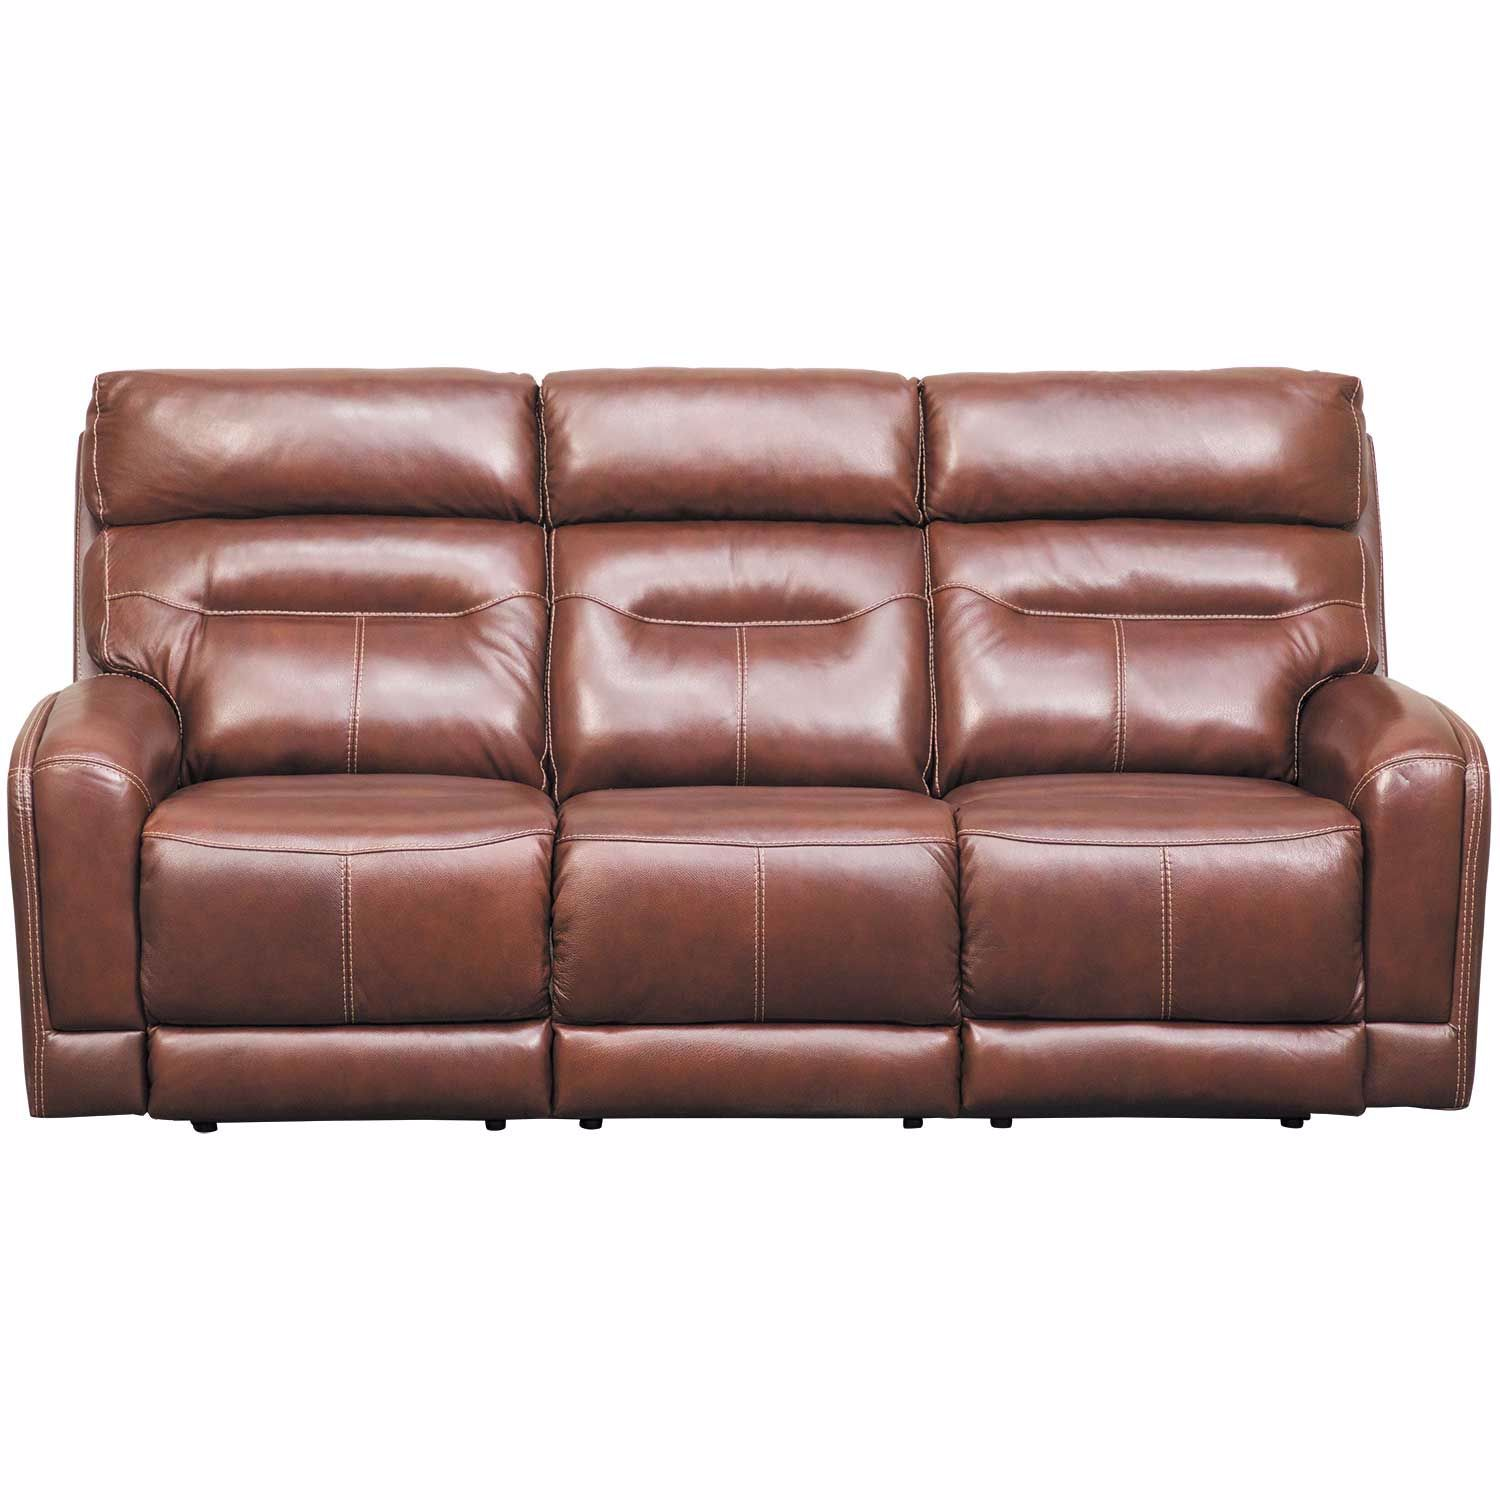 Swell Sessom Leather Power Reclining Sofa With Adjustable Headrest And Lumbar Support Pabps2019 Chair Design Images Pabps2019Com